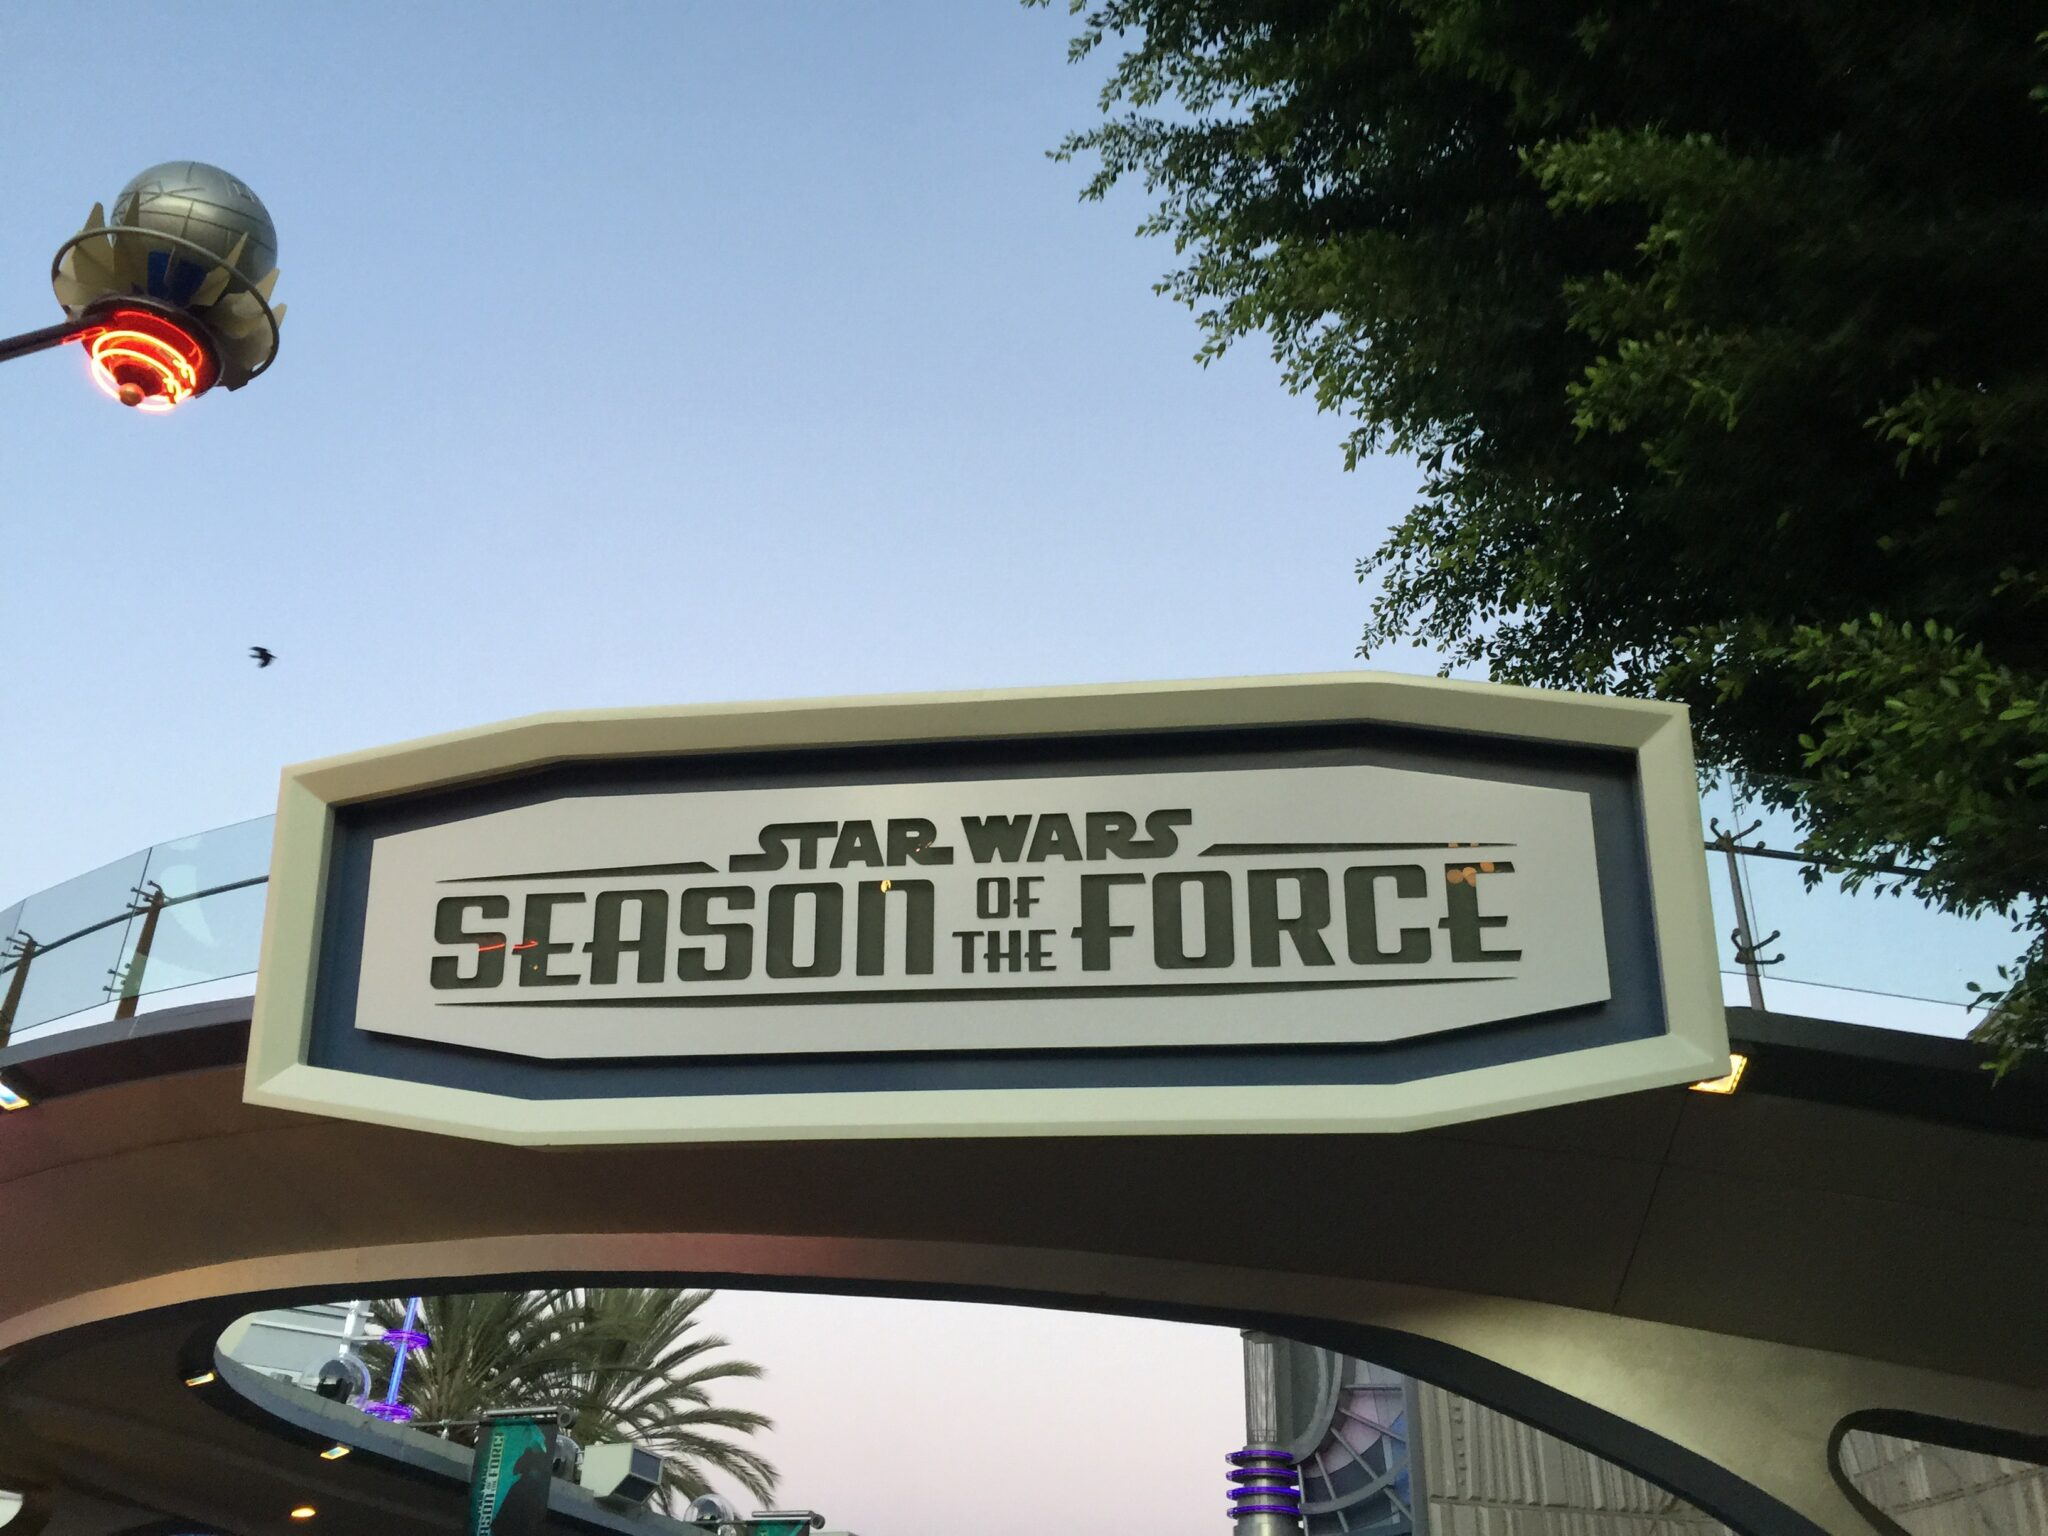 Season of the Force Takes Over Tomorrowland at Disneyland